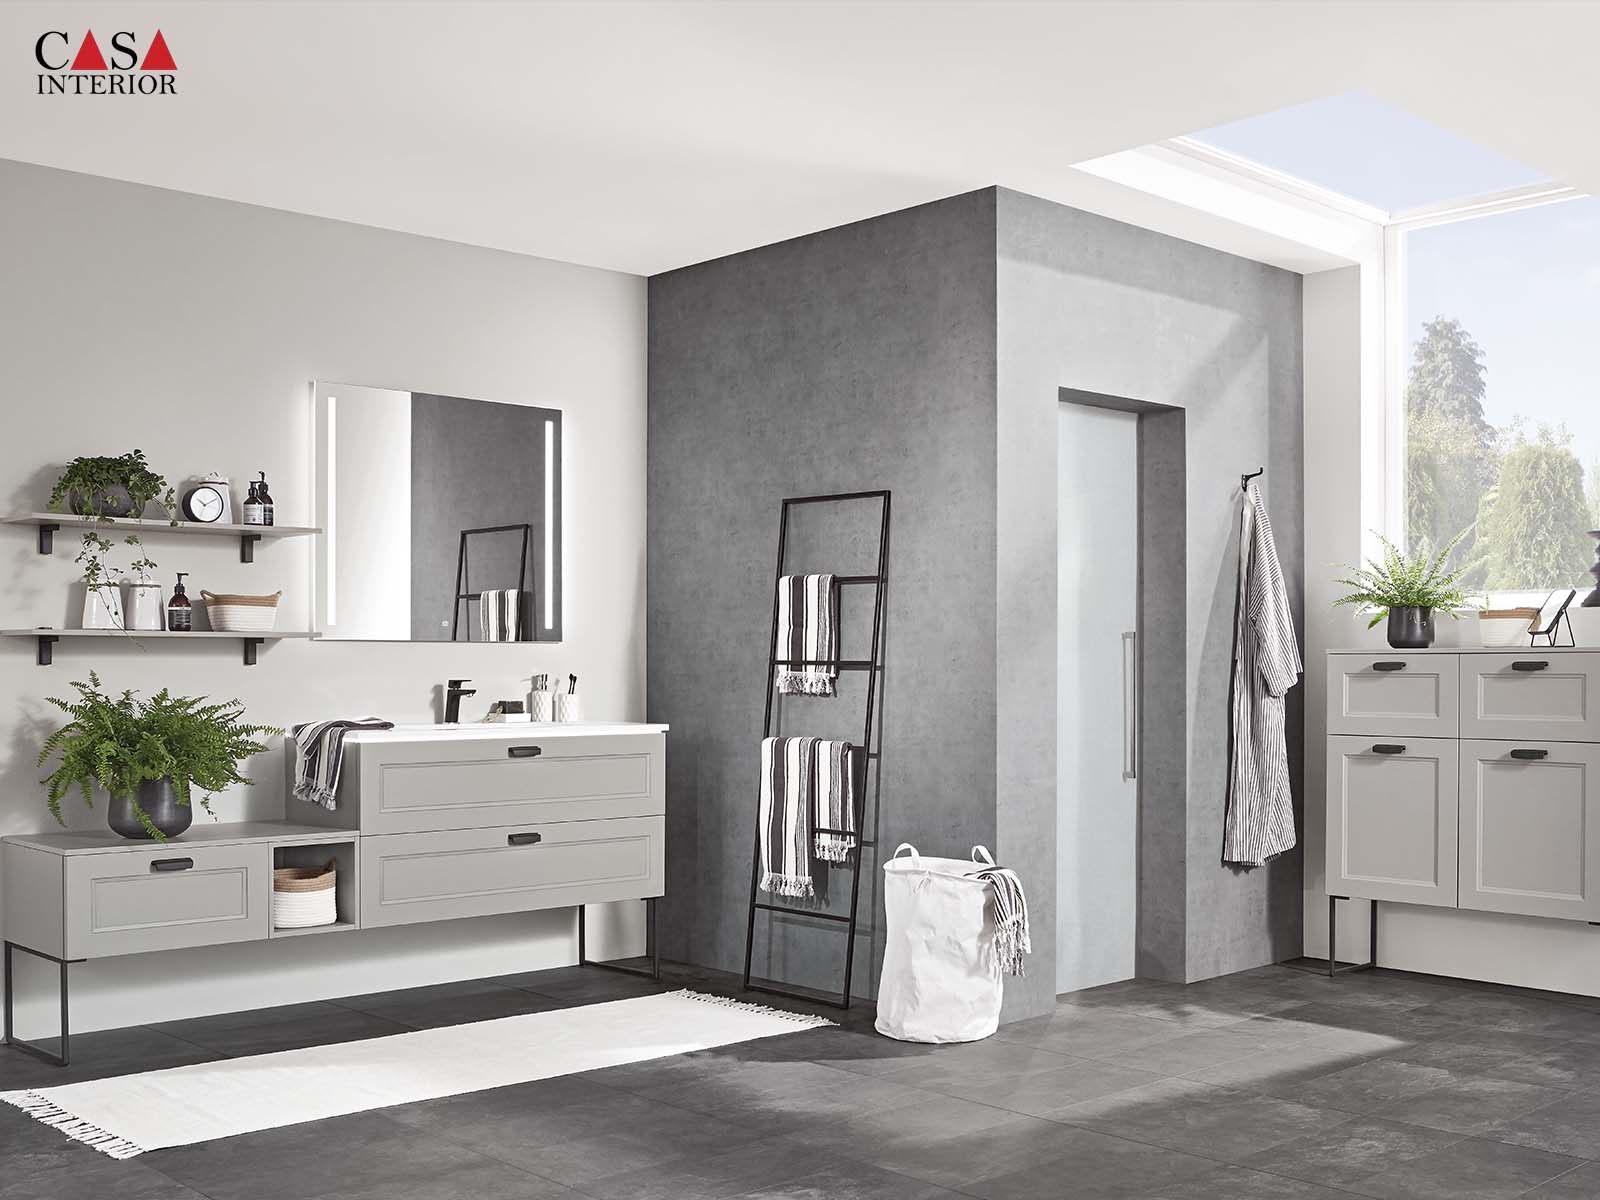 Küchentime Cascada Lacquered laminate, stone grey 772 - Bathroom